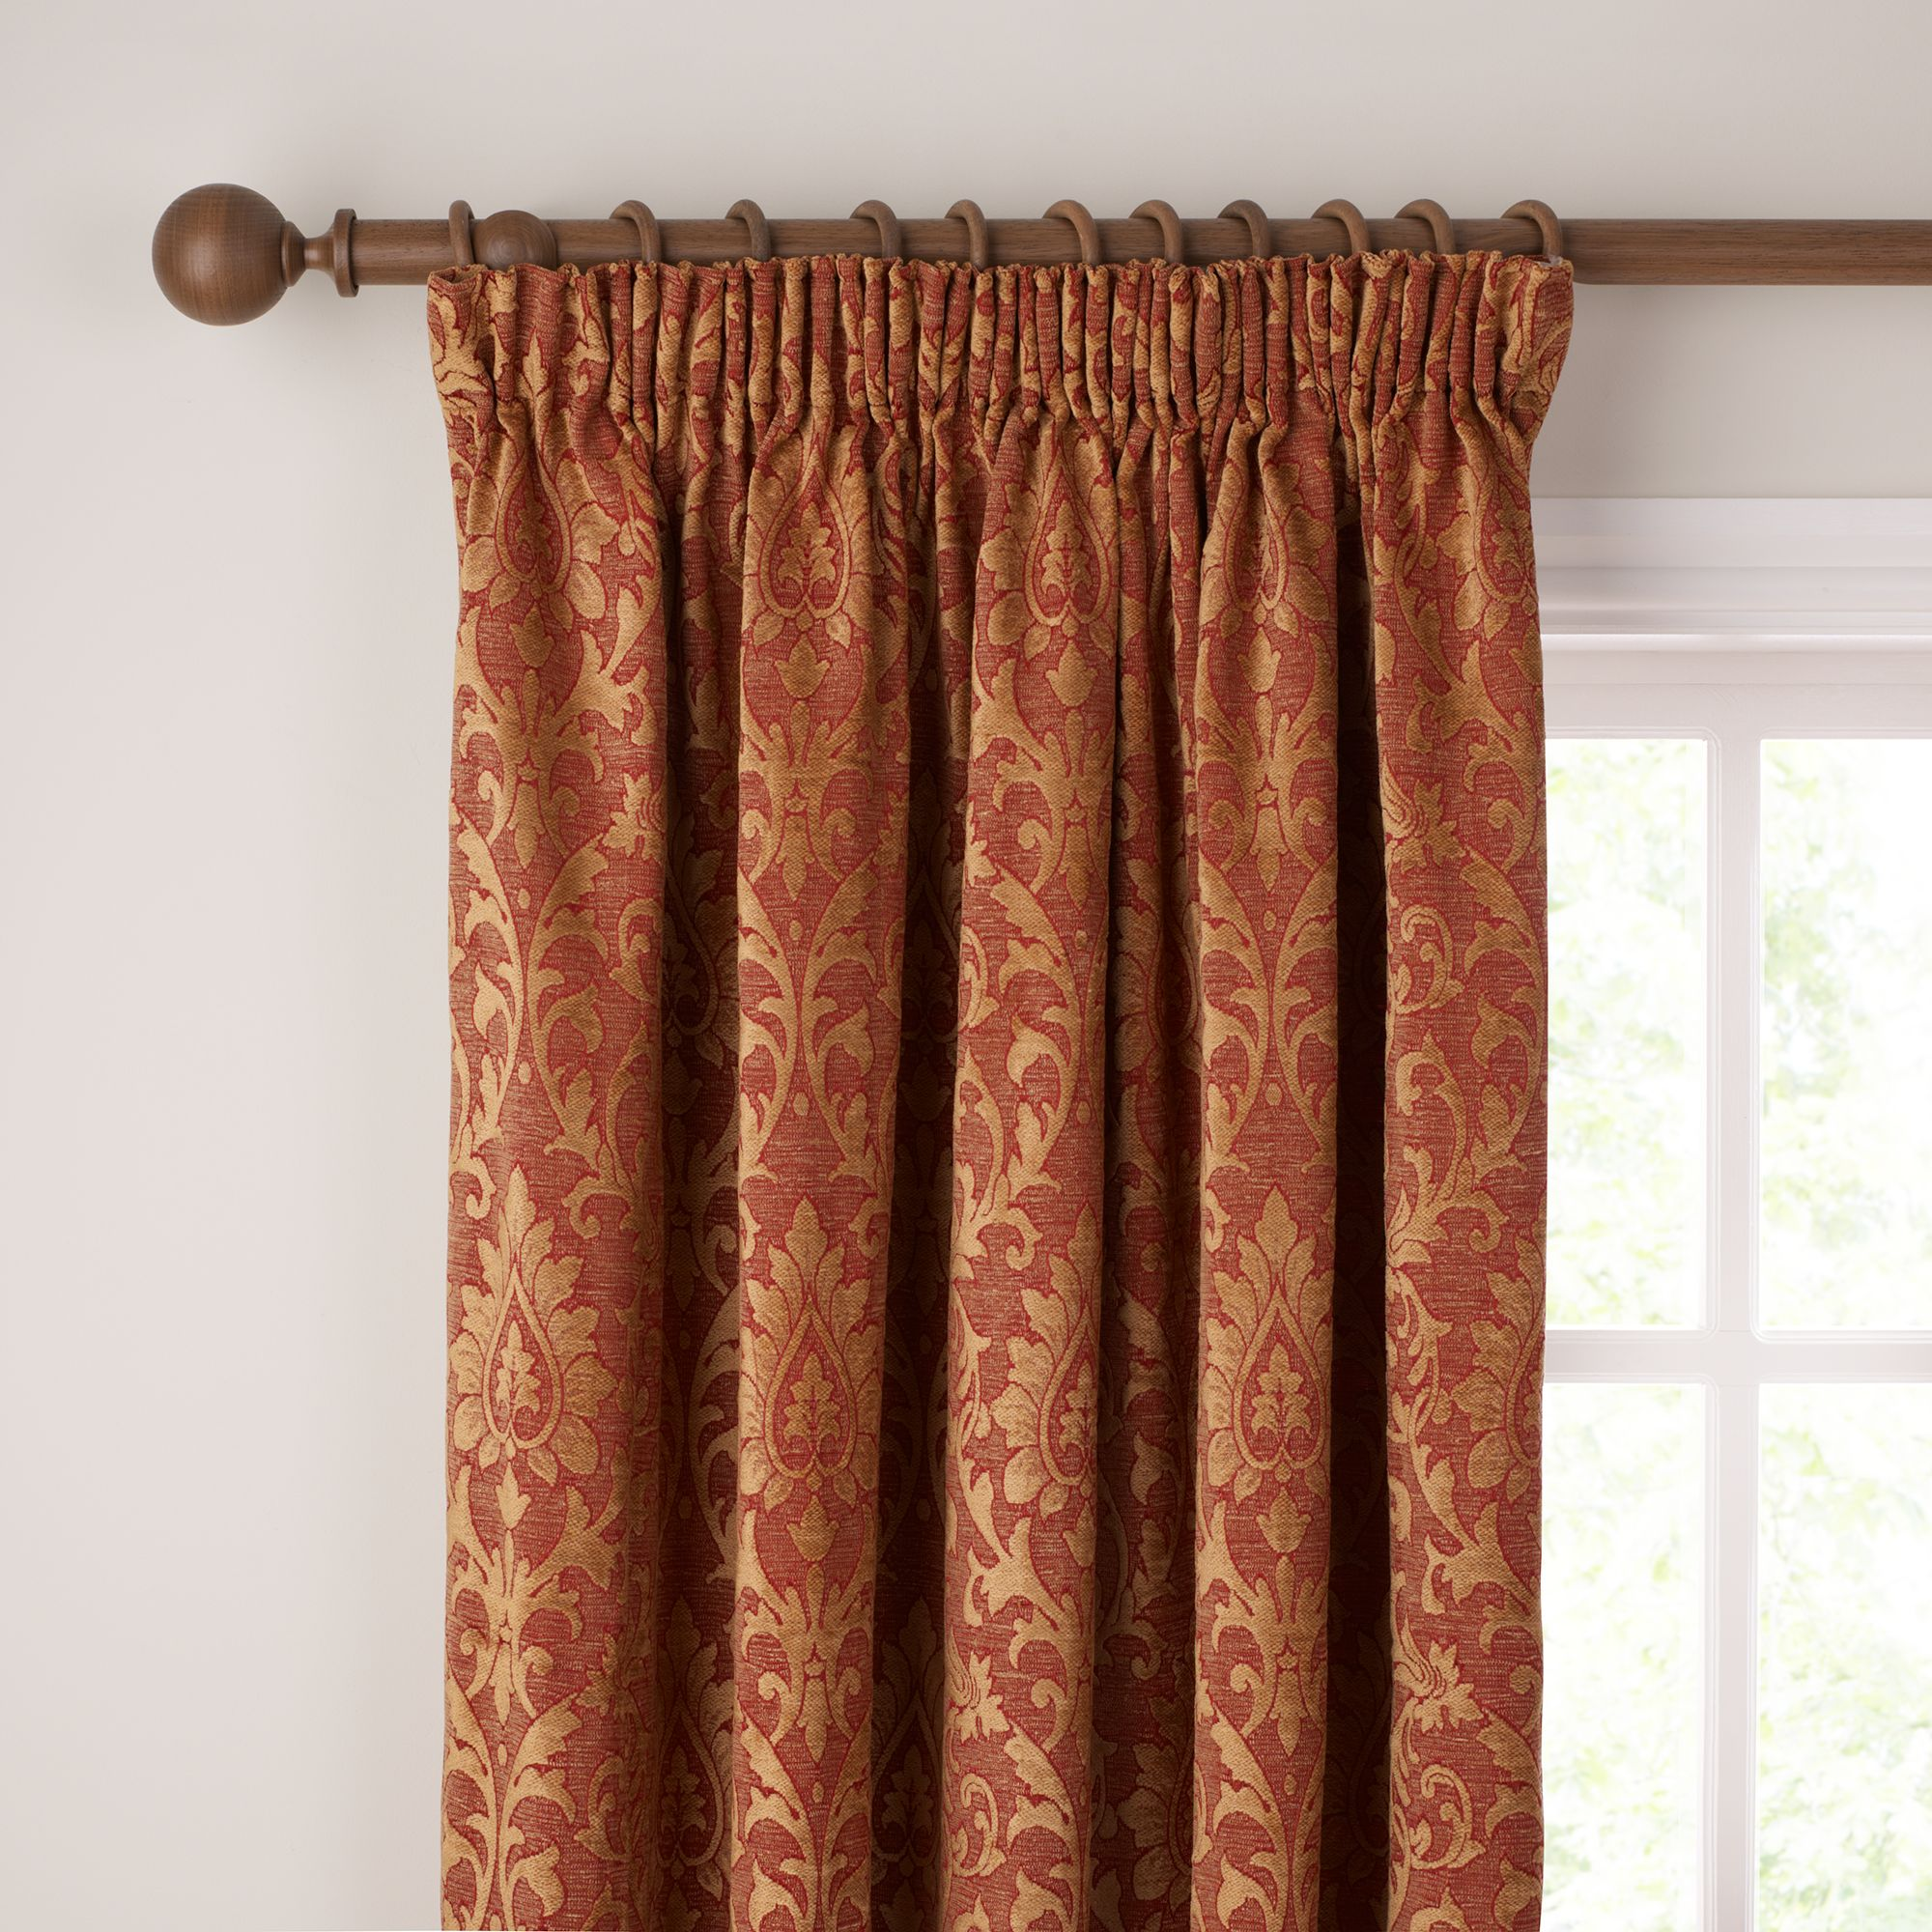 Kensington Pencil Pleat Curtains, Red